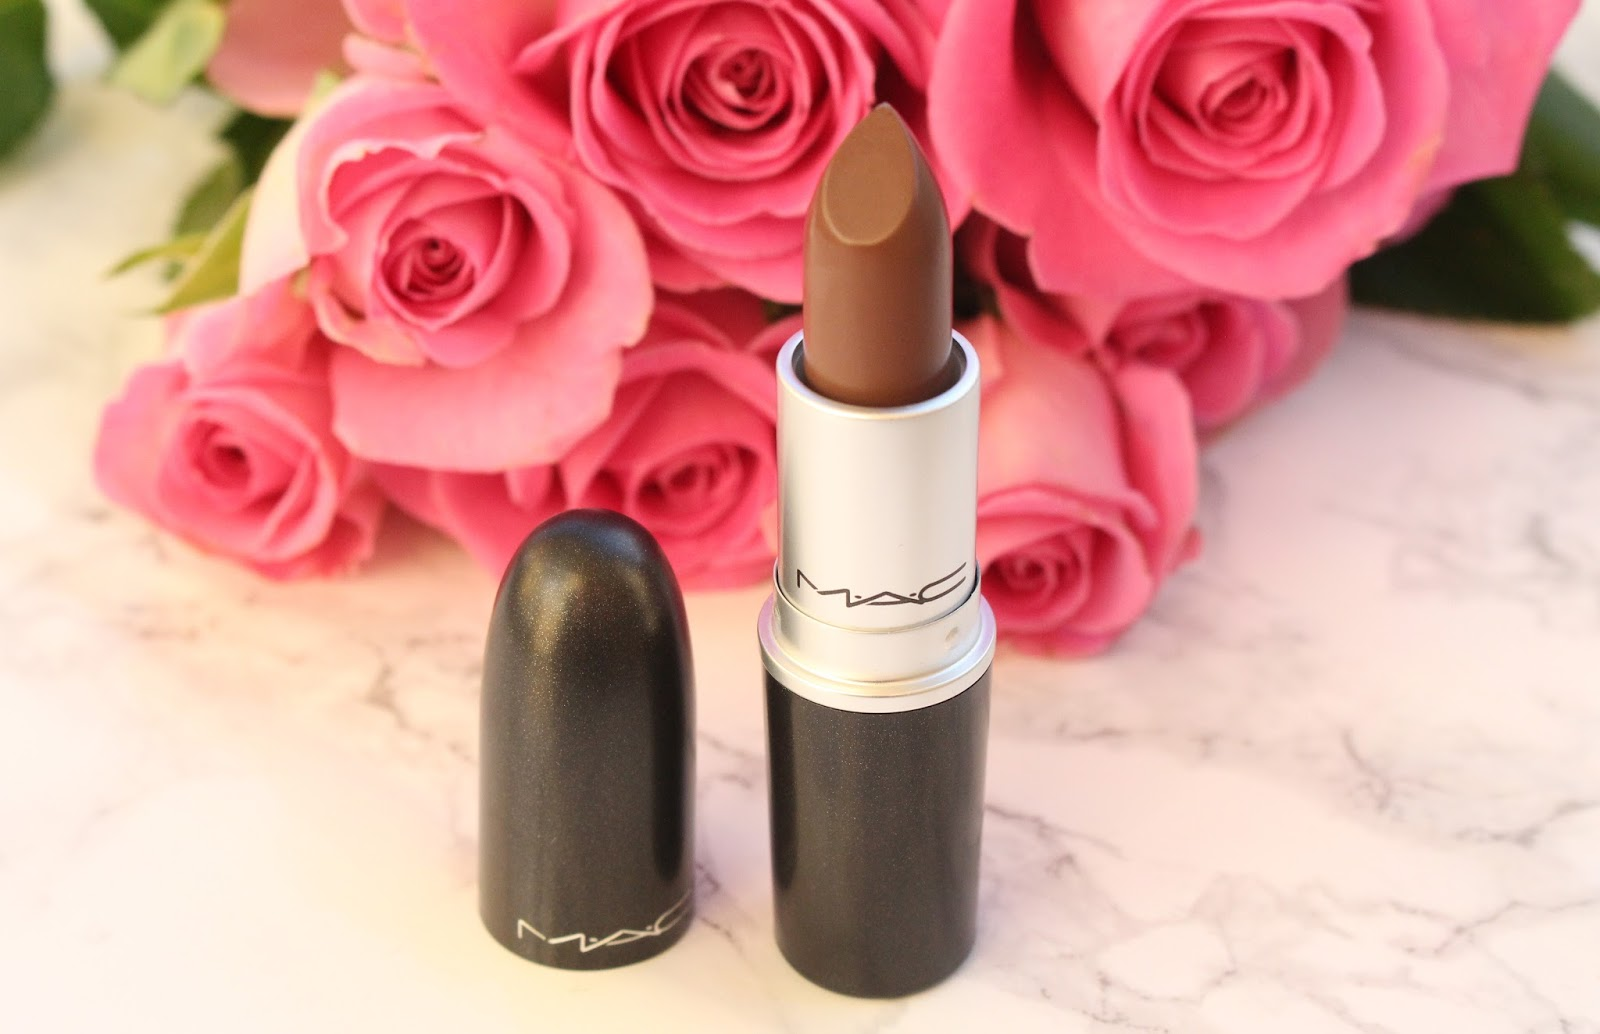 mac lipstick stone swatch another kind of beauty blog. Black Bedroom Furniture Sets. Home Design Ideas